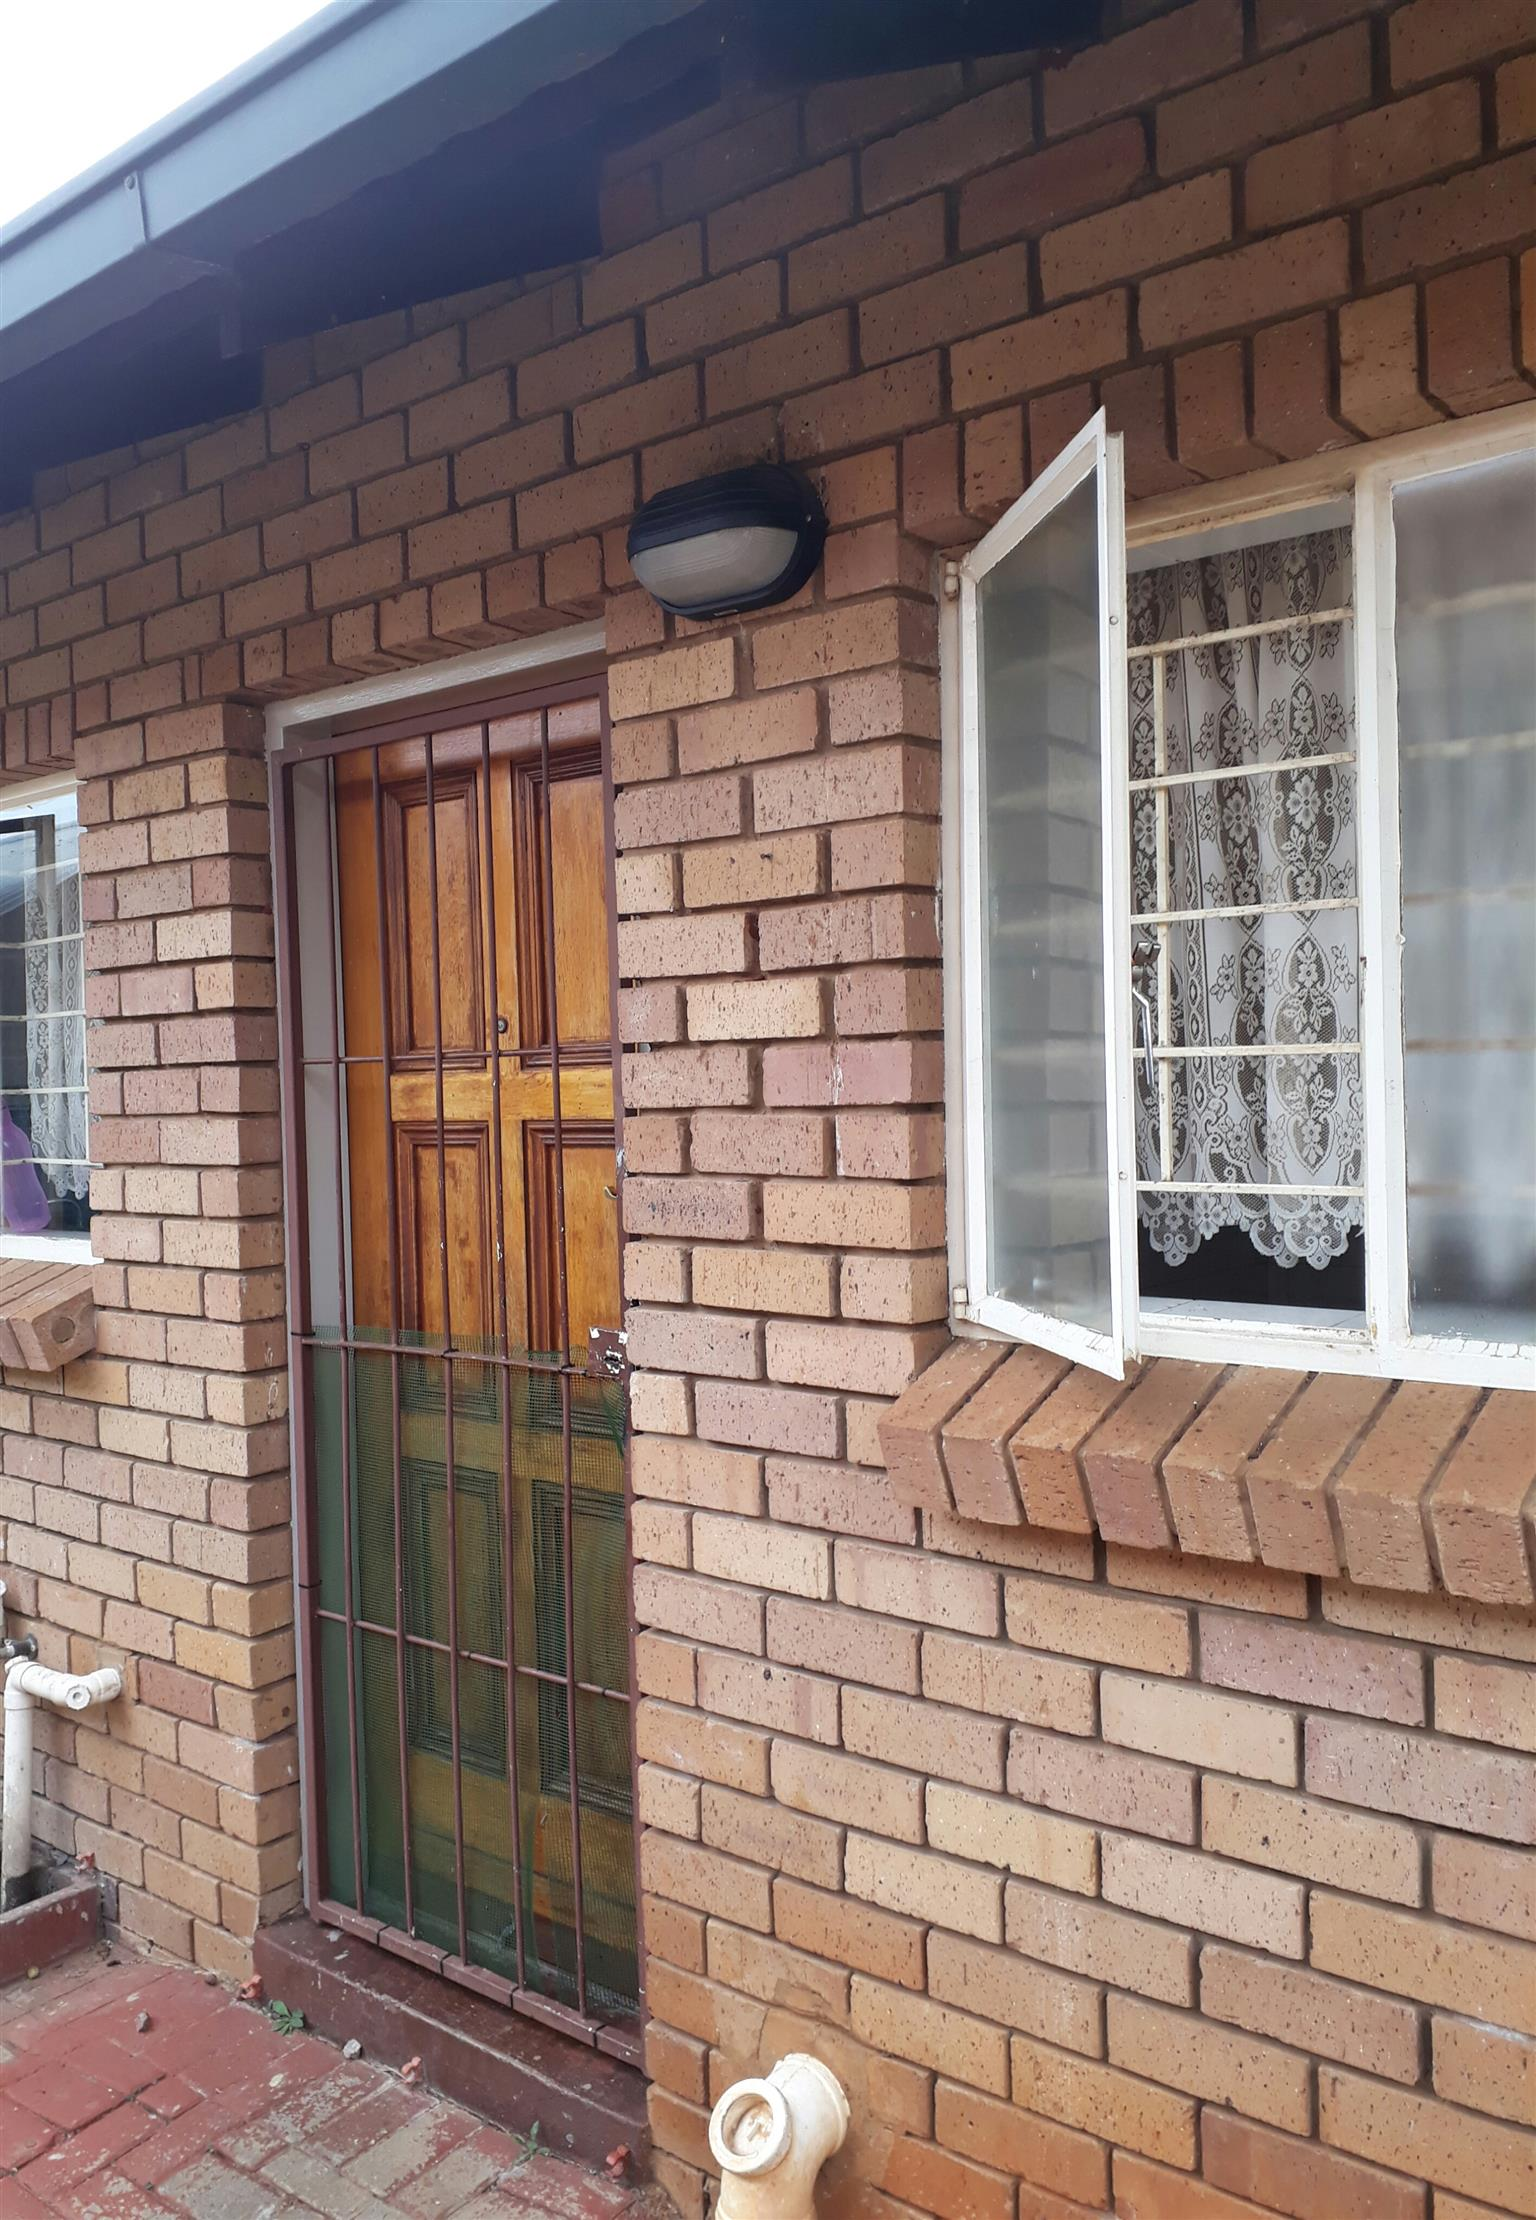 2 bedroom Townhouse in Annlin for R740000